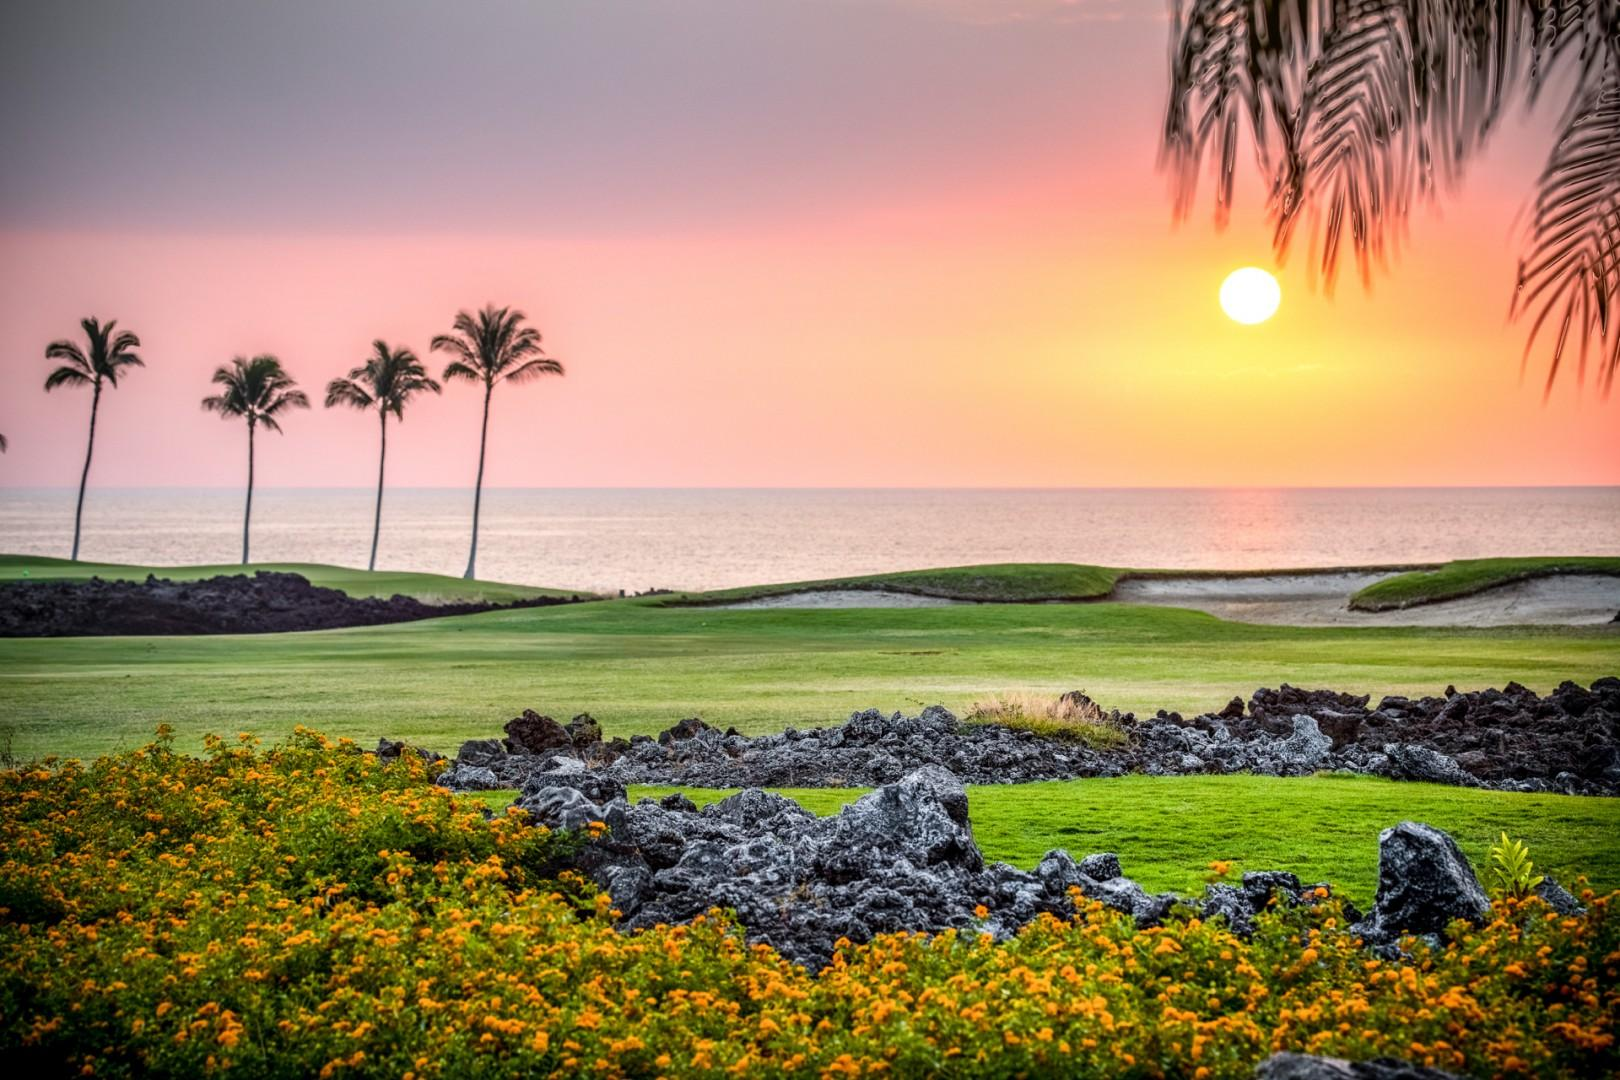 Take in the gentle sway of the palm trees and the sun dipping below the horizon from your slice of paradise.